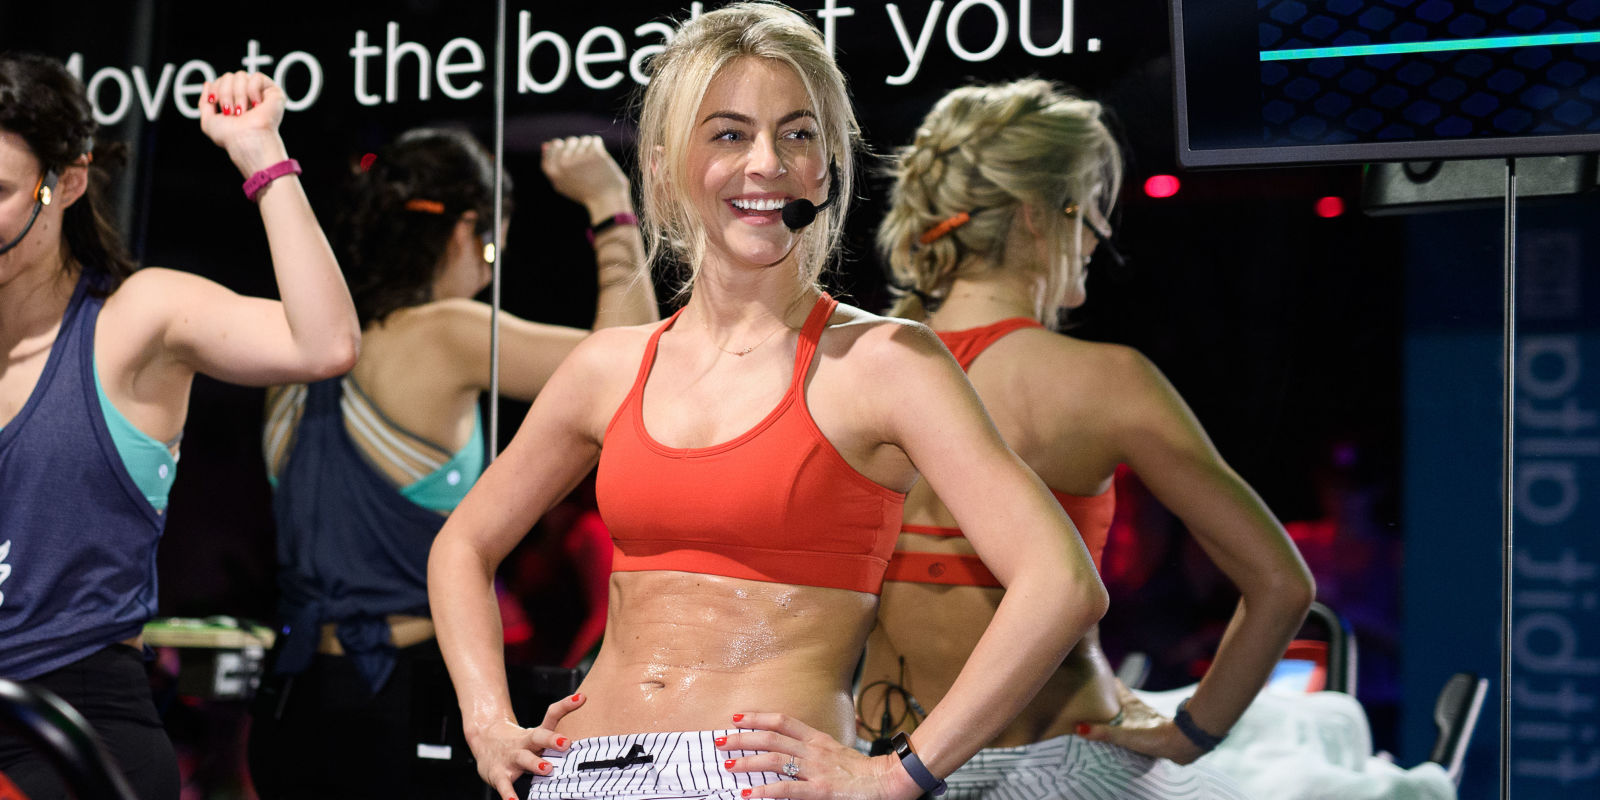 Julianne Hough Explains Why Carbs Are the Secret to Her Amazing Body